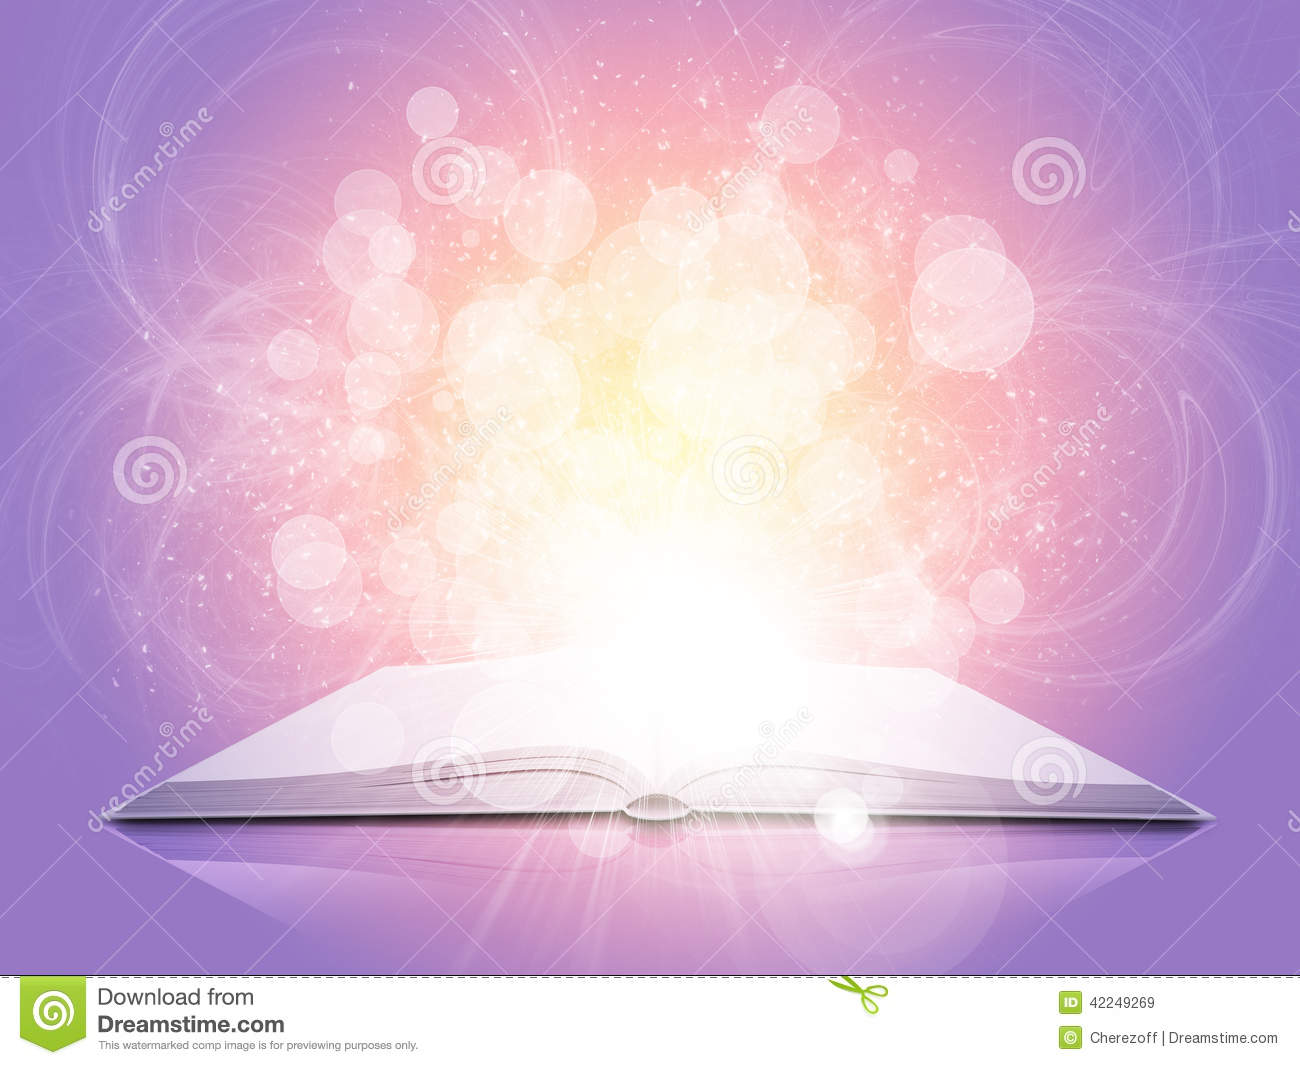 Wallpaper Falling Stars Old Open Book With Magic Light And Falling Stars Stock